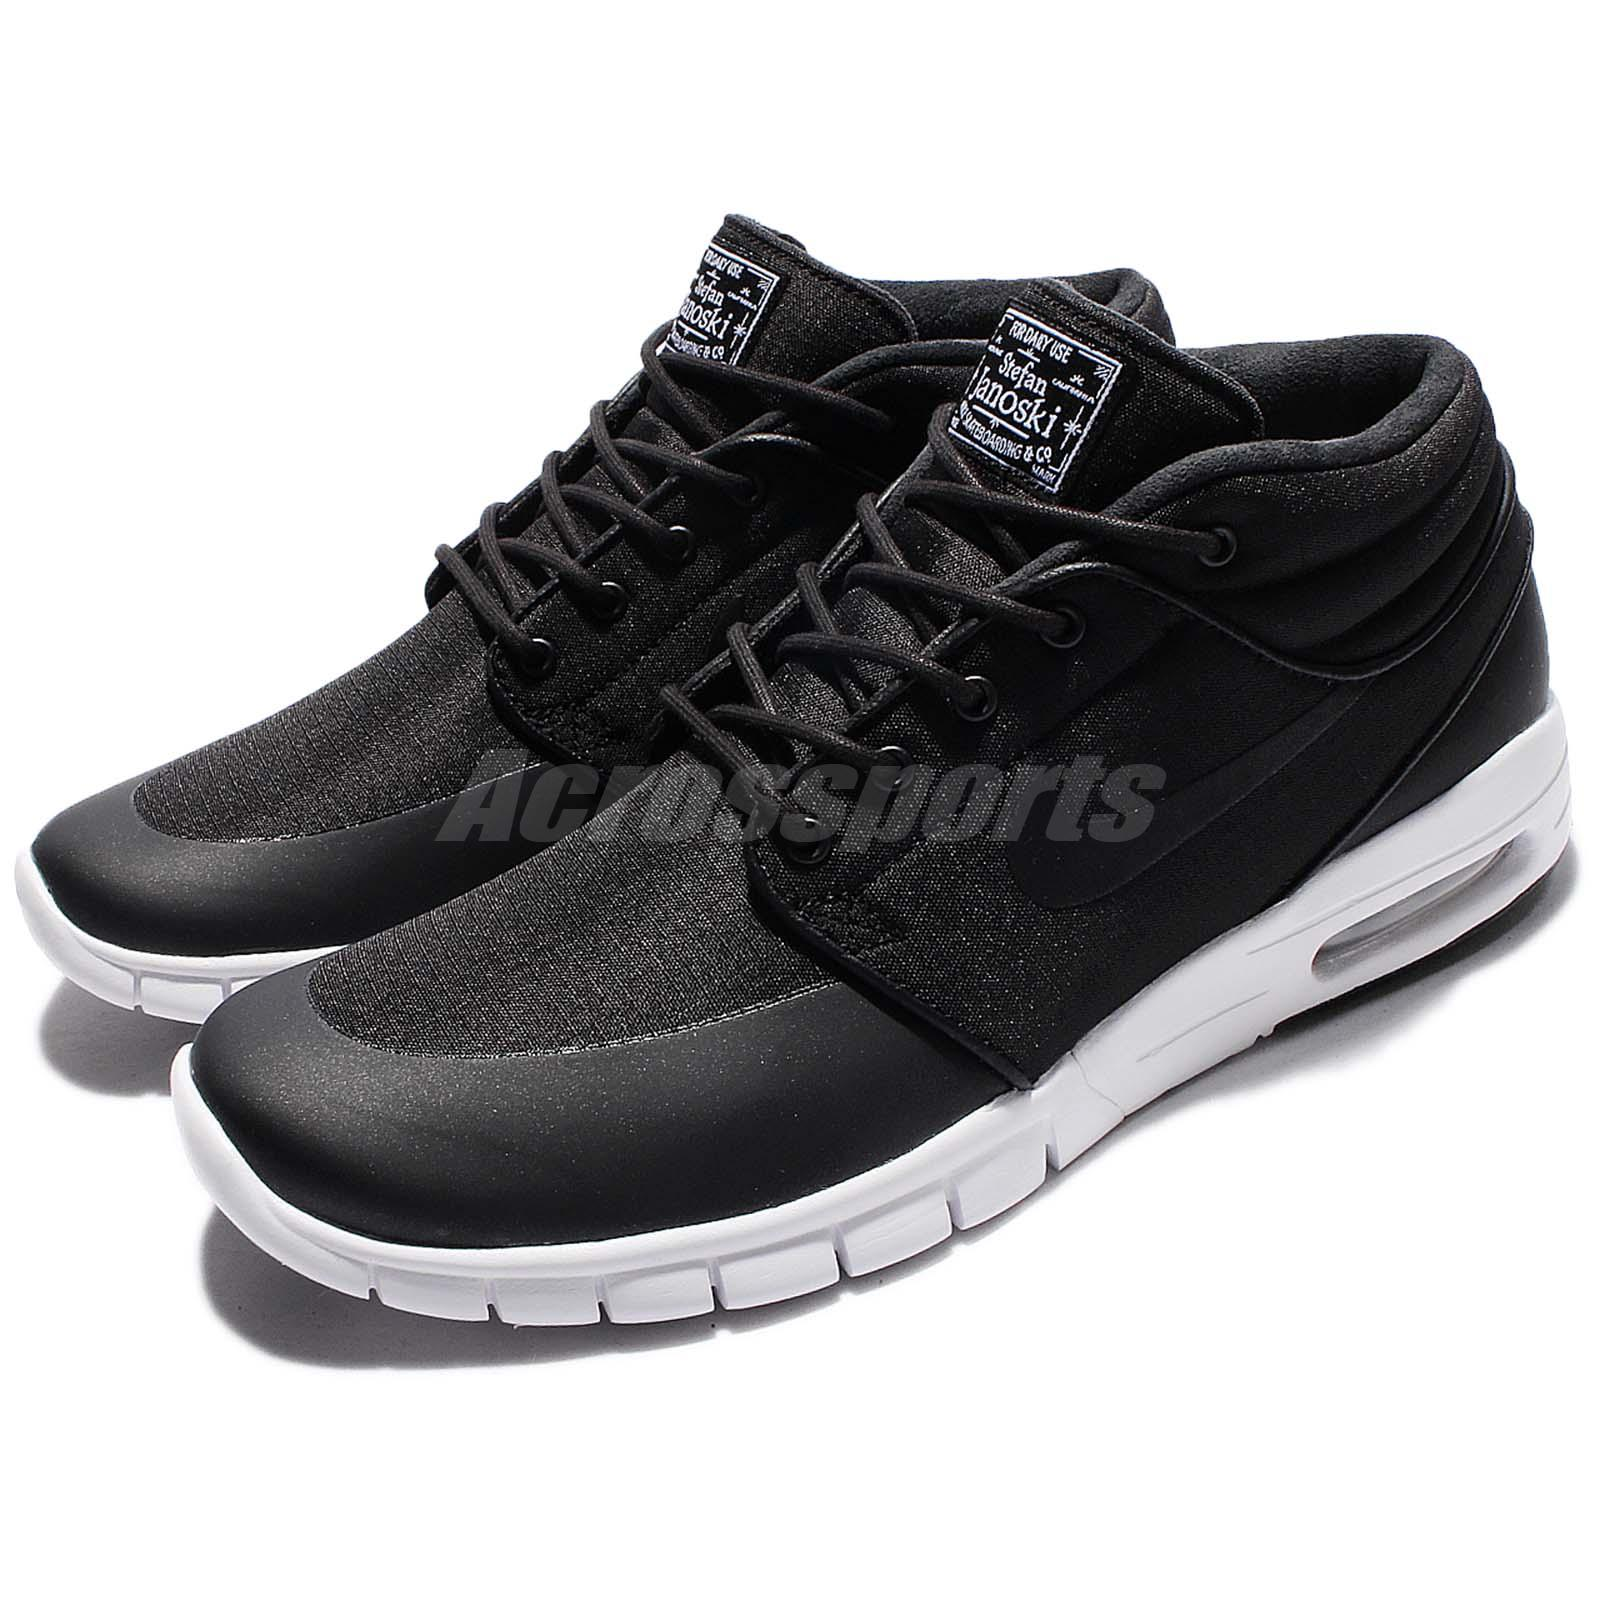 Details about Nike Stefan Janoski Max Mid SB Black White Men Skateboarding  Shoes 807507-001 4da863217